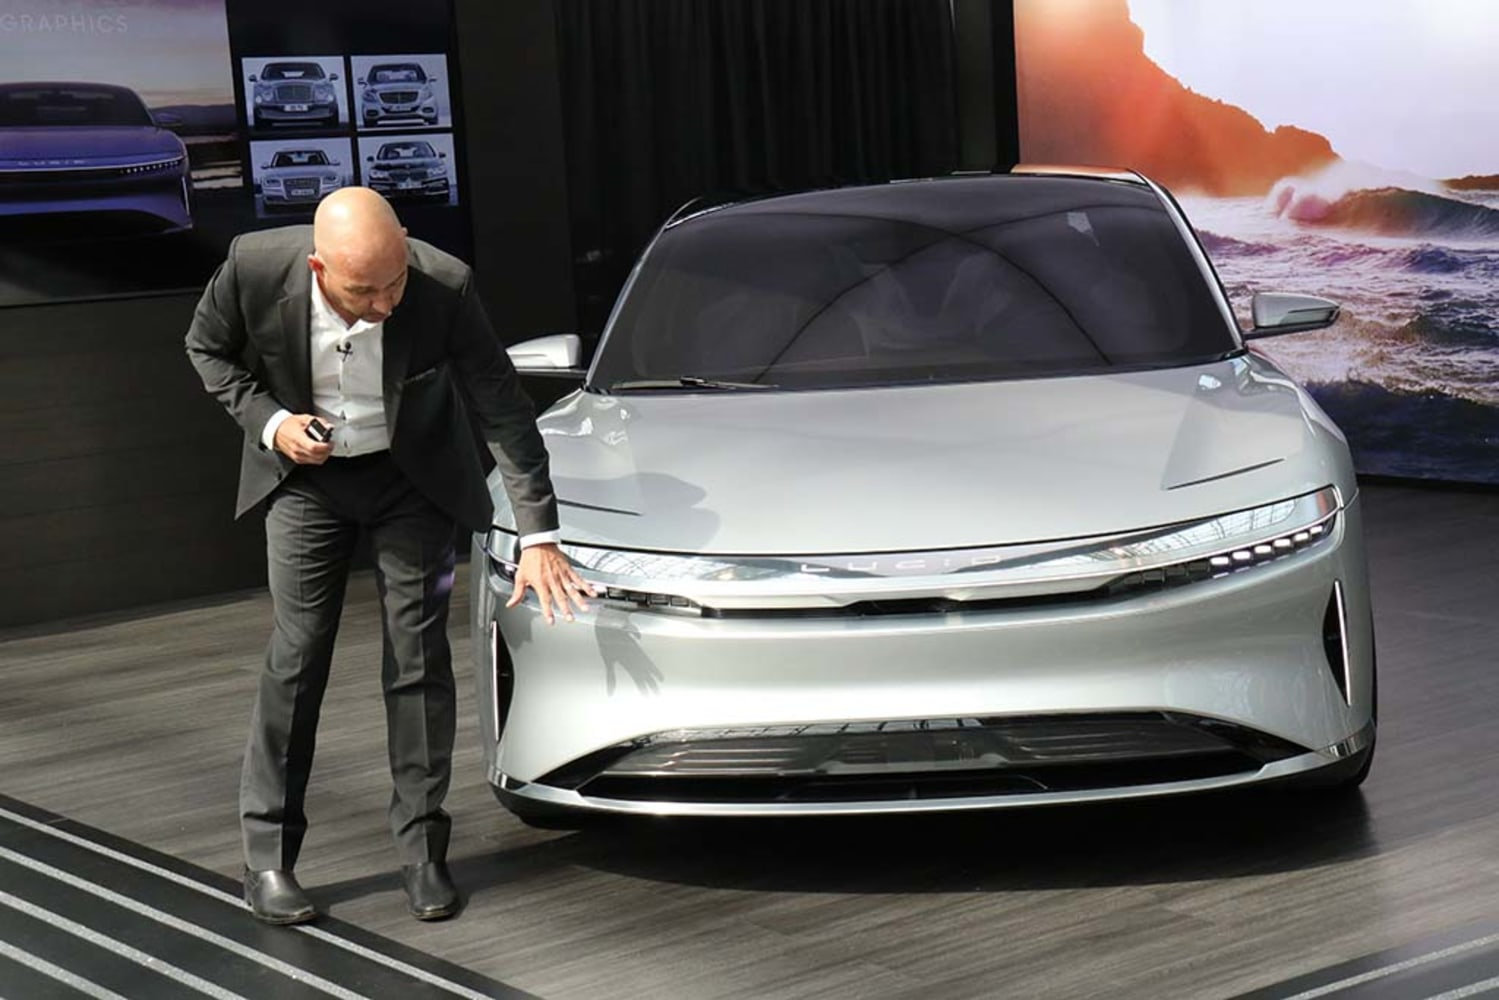 Don T Call It A Tesla Killer But The Lucid Electric Car Might